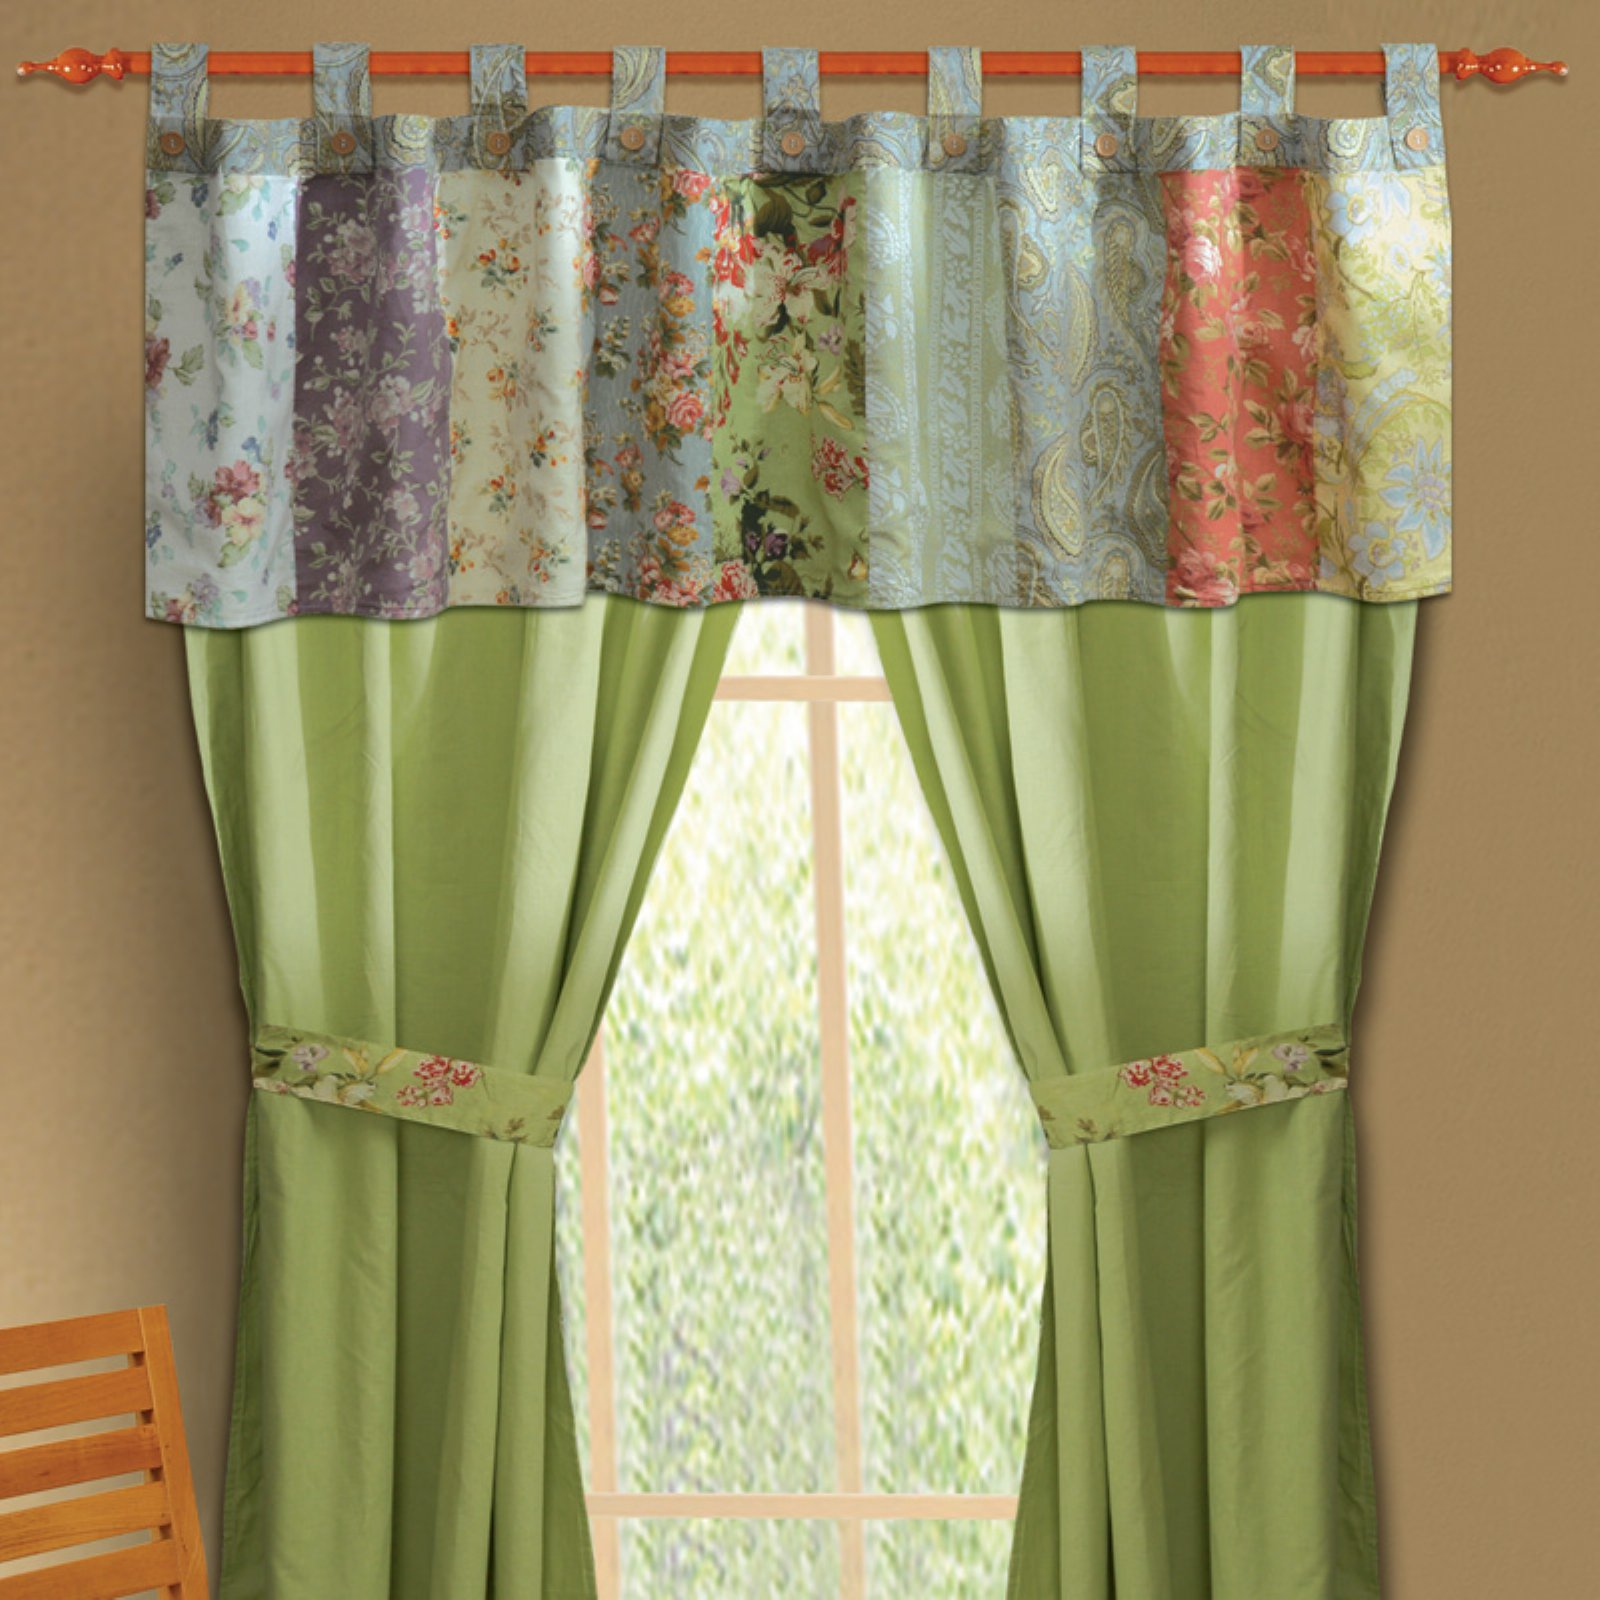 Greenland Home Fashions Blooming Prairie - Valance